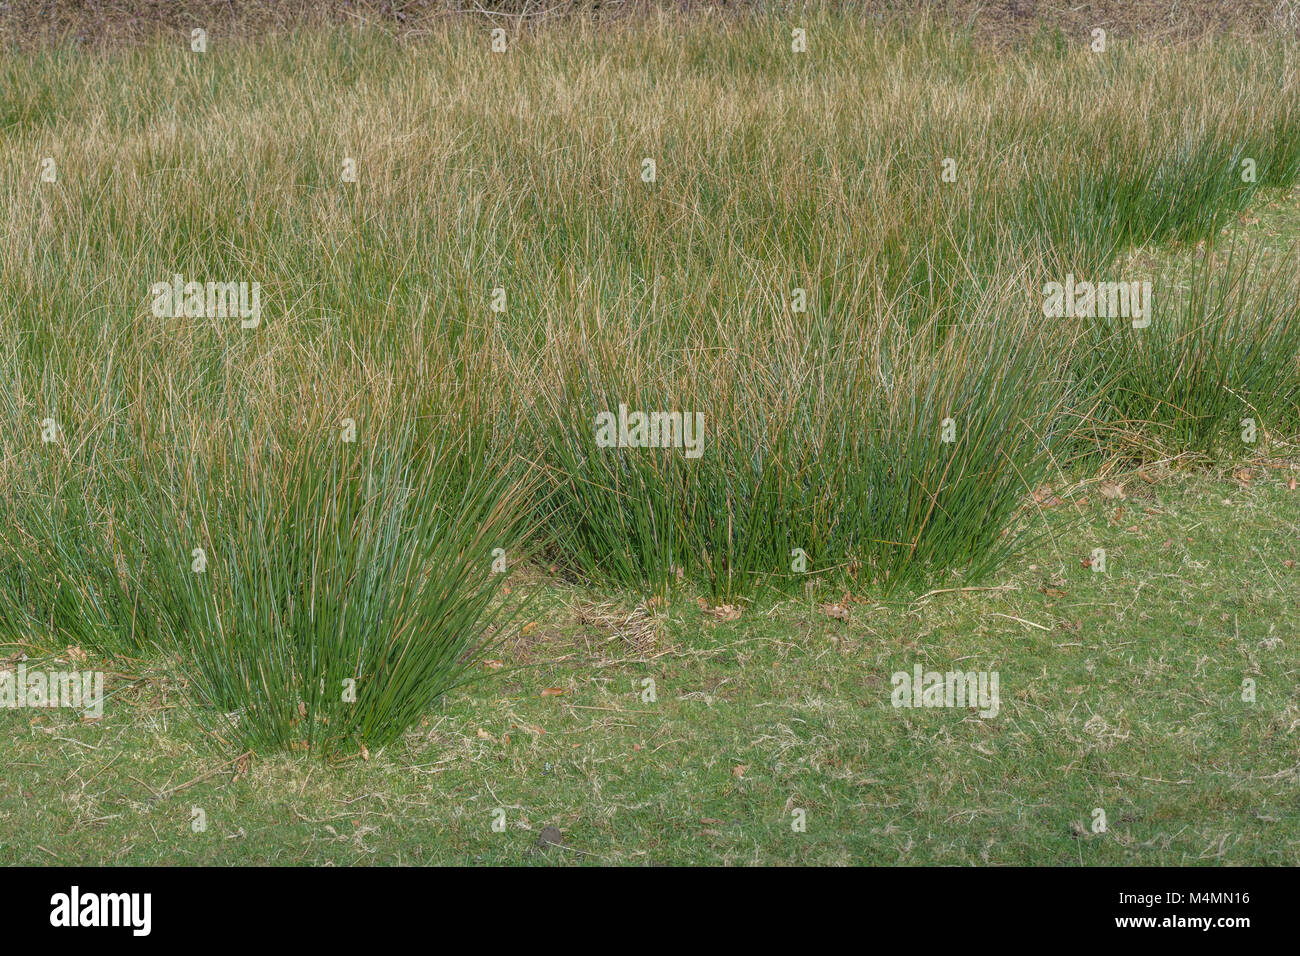 Mass of Juncus Rush (Juncus effusus) in wet field. Once known as the Soft Rush, or Candle Rush. - Stock Image